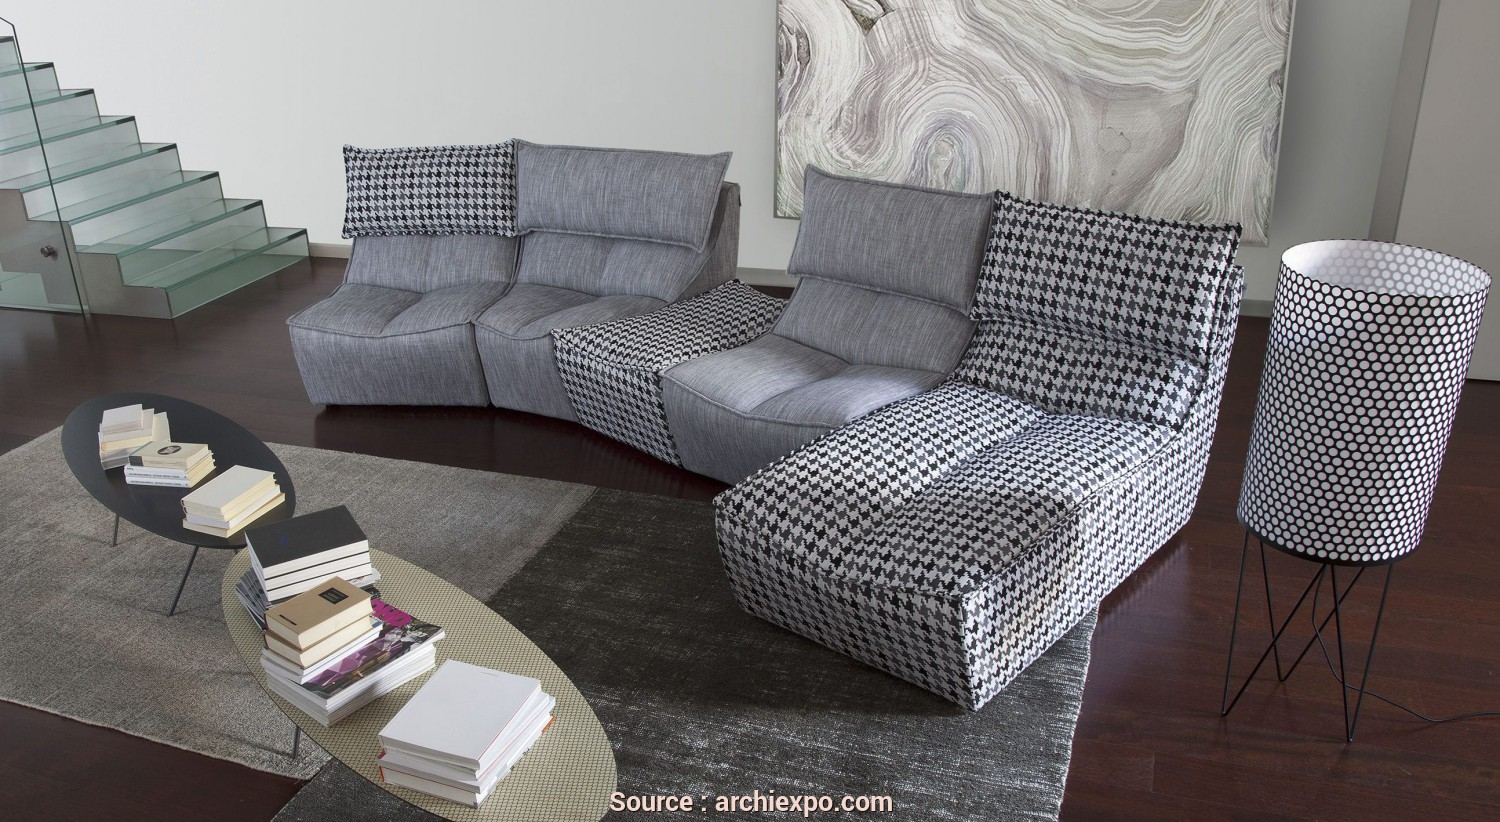 Calia Italia, Hop Prix, Originale Modular Sofa / Contemporary / Fabric / 4-Seater -, HOP